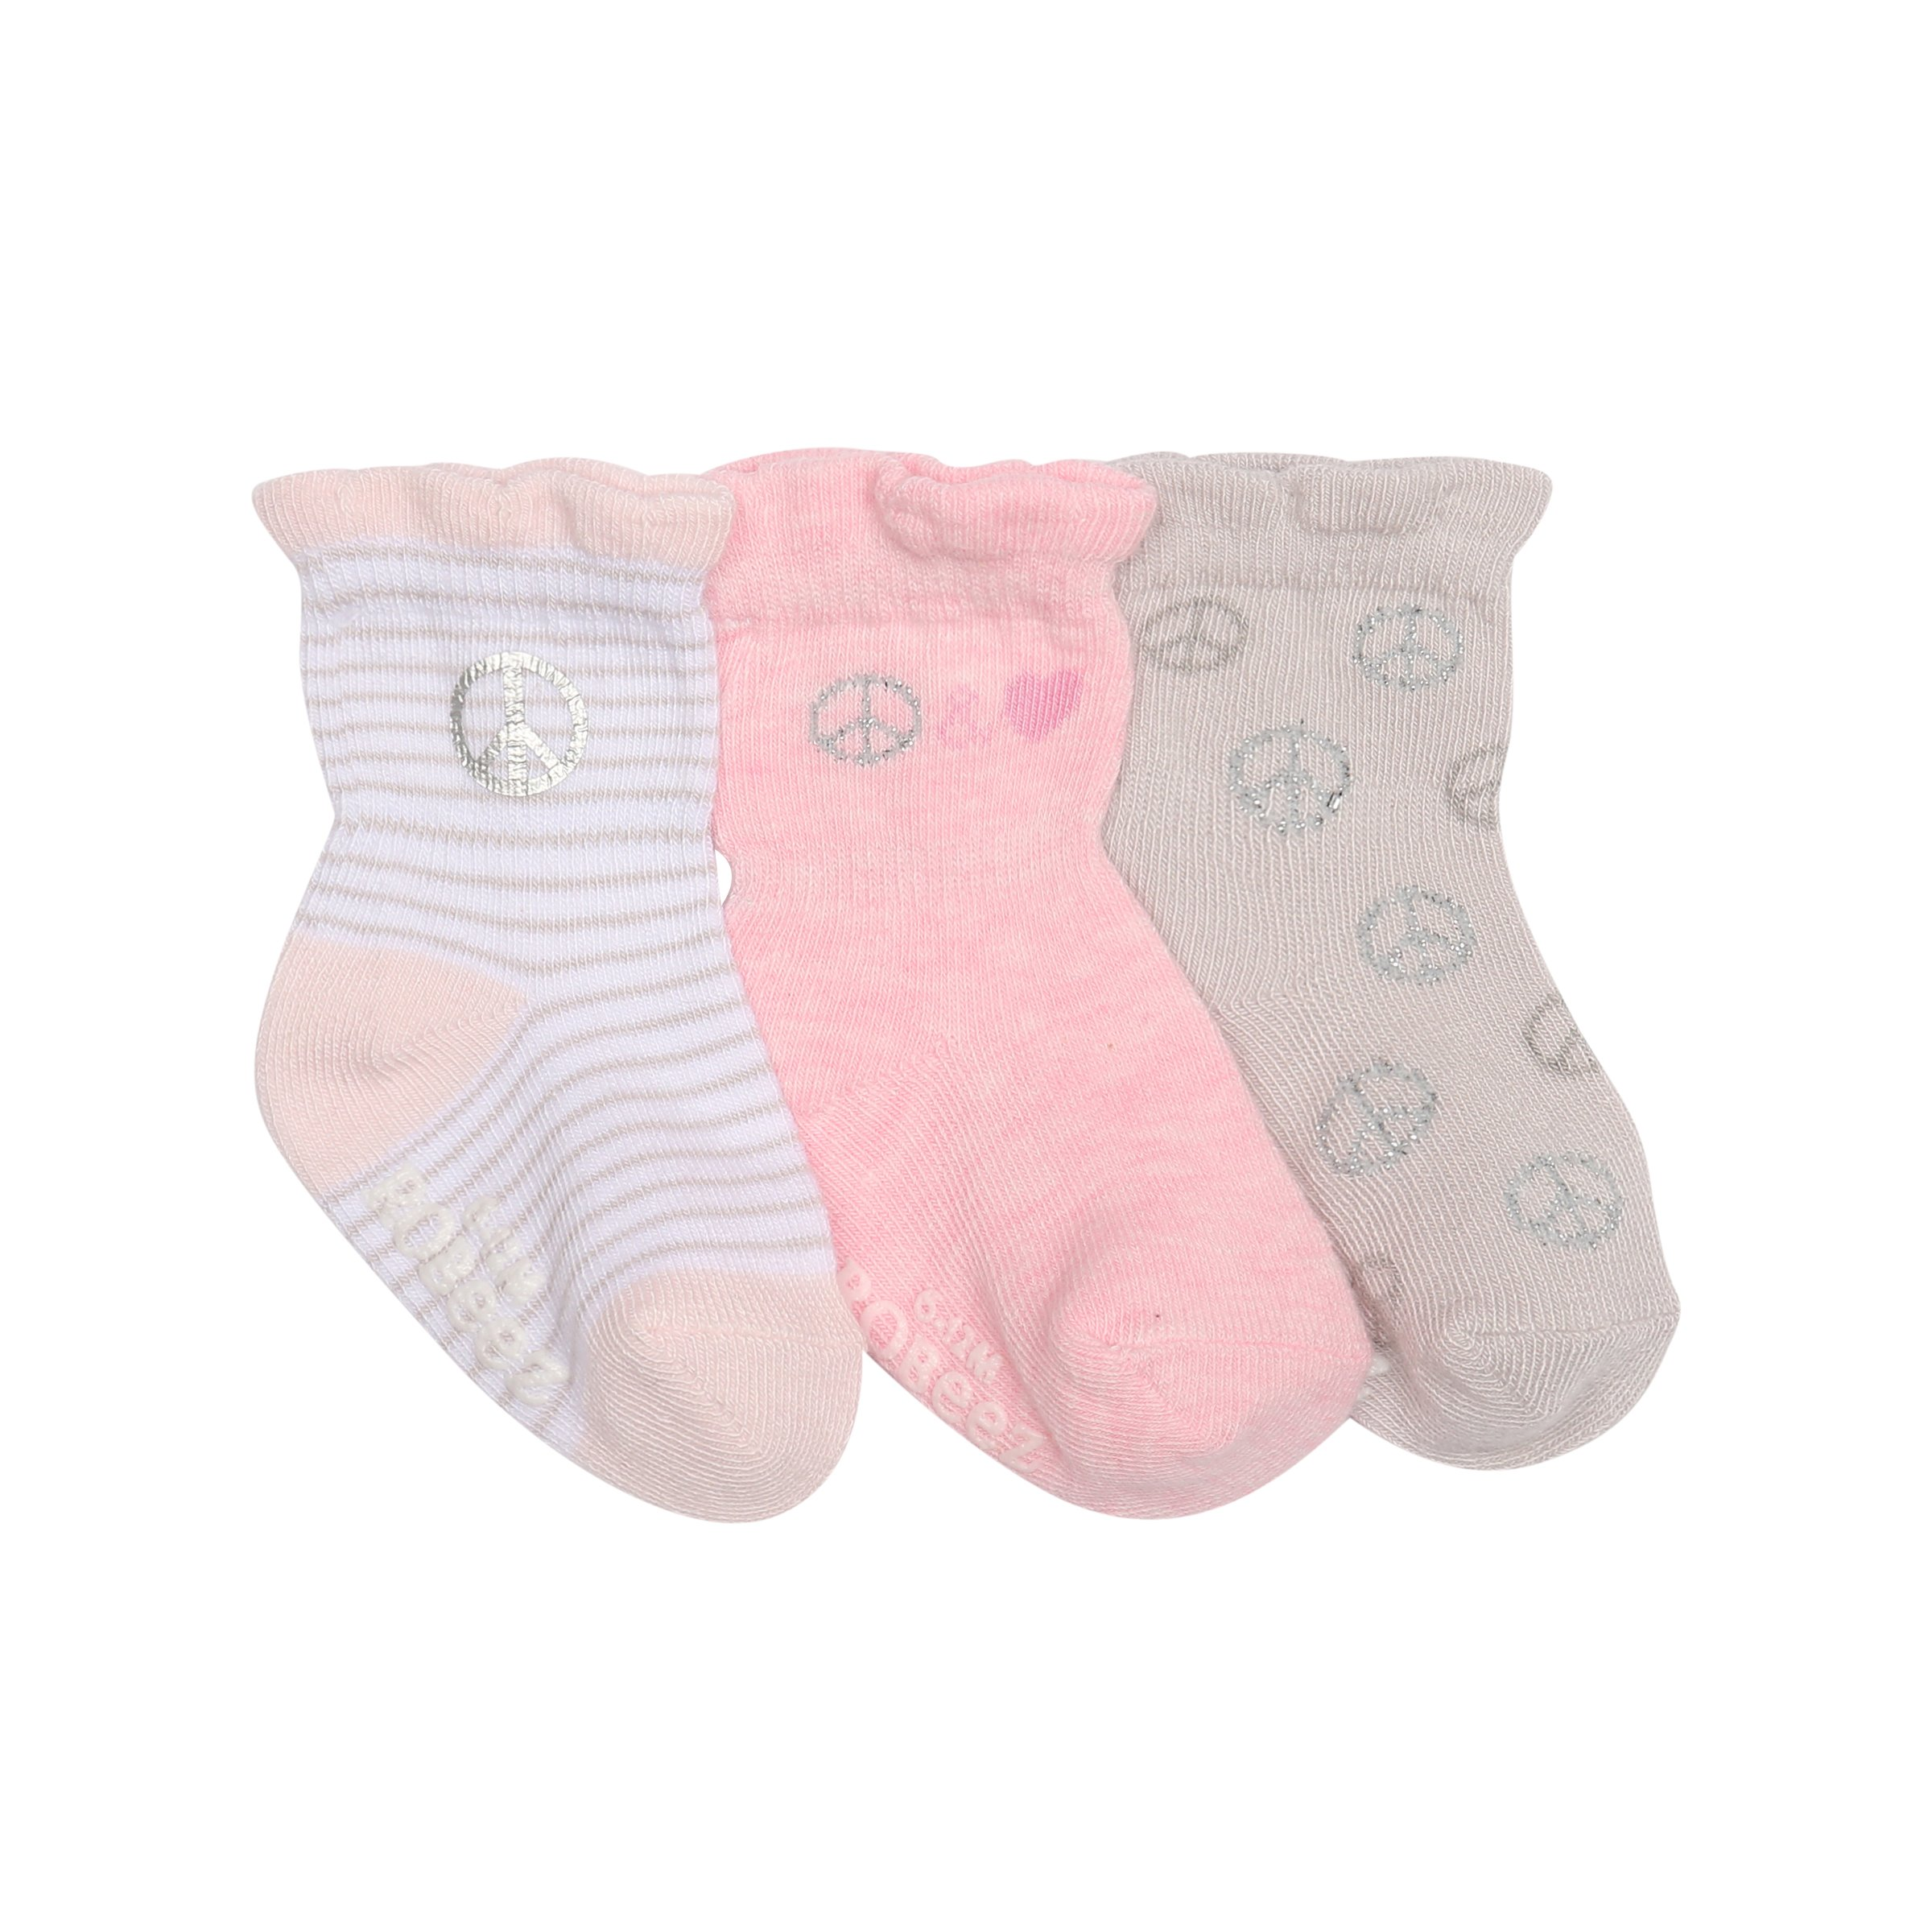 Robeez Baby Girls 3-Pack Socks, Peace/Love/Pink/Grey/White, 2T-4T